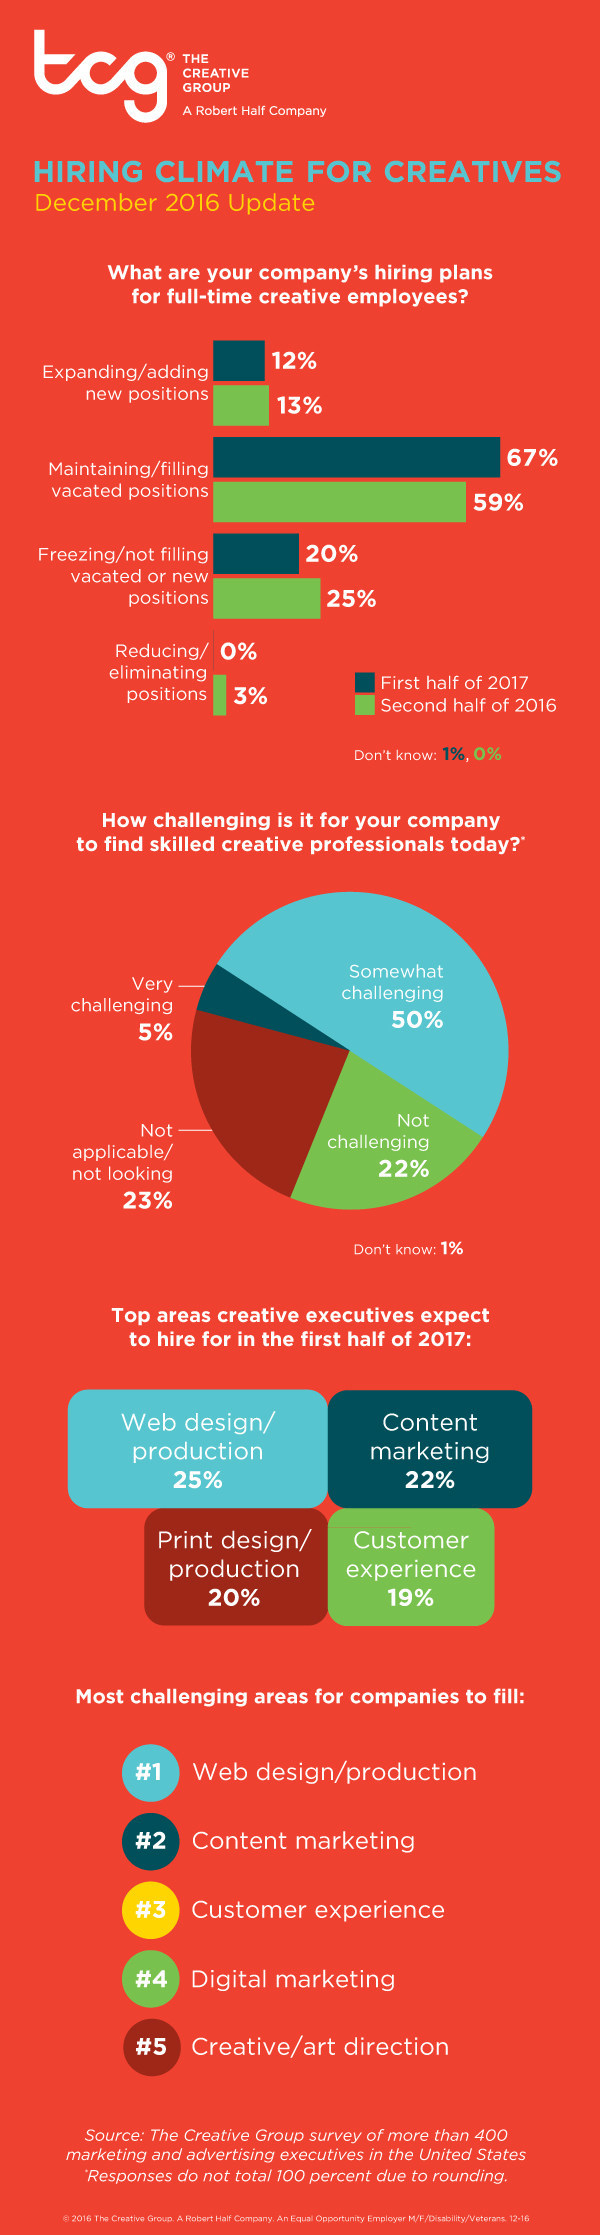 Research from The Creative Group reveals U.S. advertising and marketing executives' hiring plans for first half of 2017